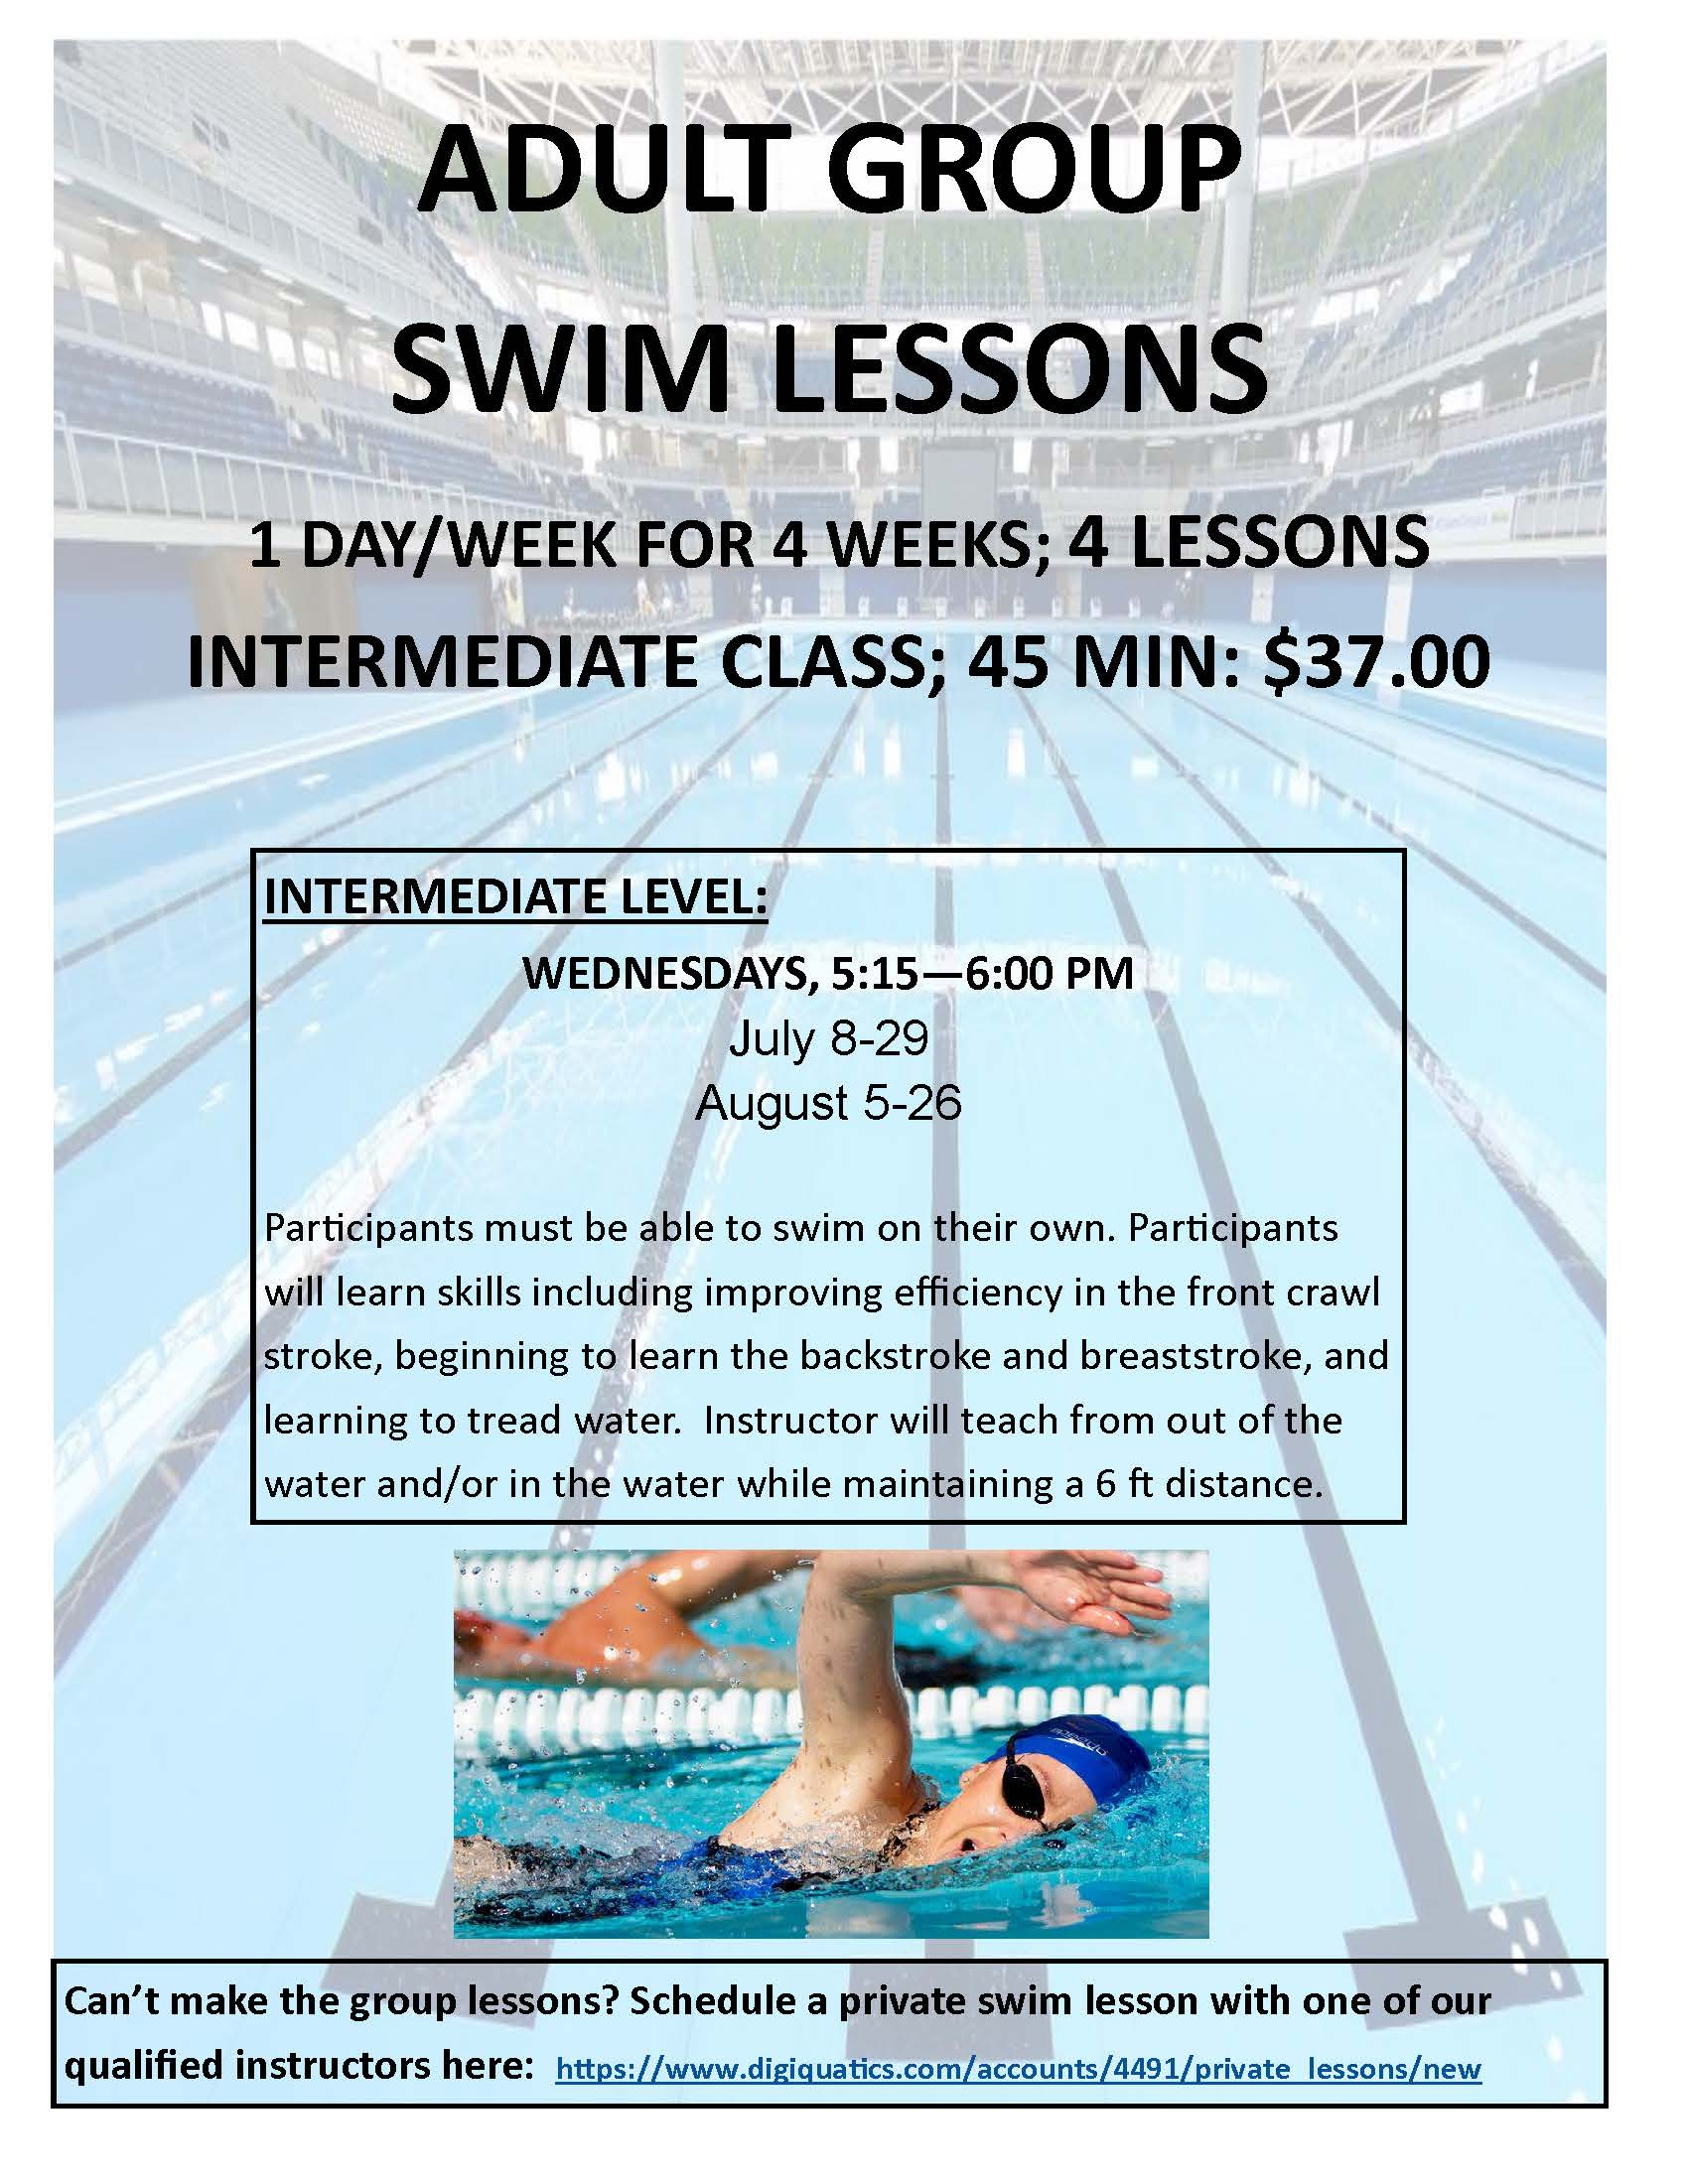 Adult Swim Lessons Flyer Summer 2020